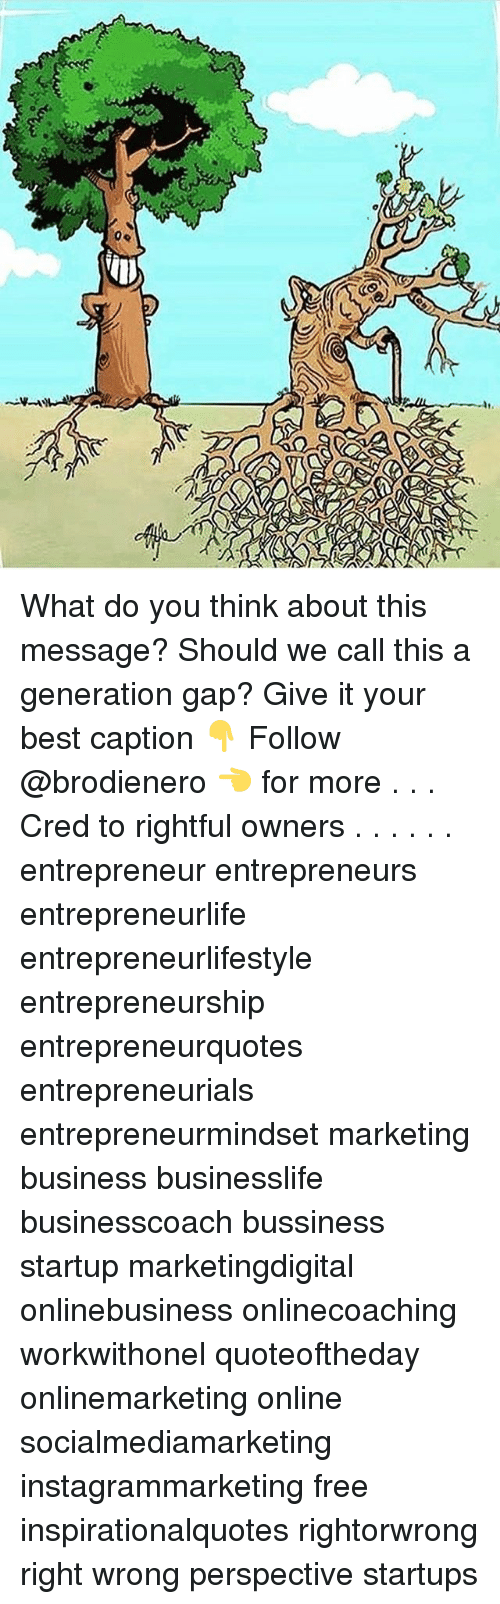 Memes, Best, and Business: What do you think about this message? Should we call this a generation gap? Give it your best caption 👇 Follow @brodienero 👈 for more . . . Cred to rightful owners . . . . . . entrepreneur entrepreneurs entrepreneurlife entrepreneurlifestyle entrepreneurship entrepreneurquotes entrepreneurials entrepreneurmindset marketing business businesslife businesscoach bussiness startup marketingdigital onlinebusiness onlinecoaching workwithonel quoteoftheday onlinemarketing online socialmediamarketing instagrammarketing free inspirationalquotes rightorwrong right wrong perspective startups